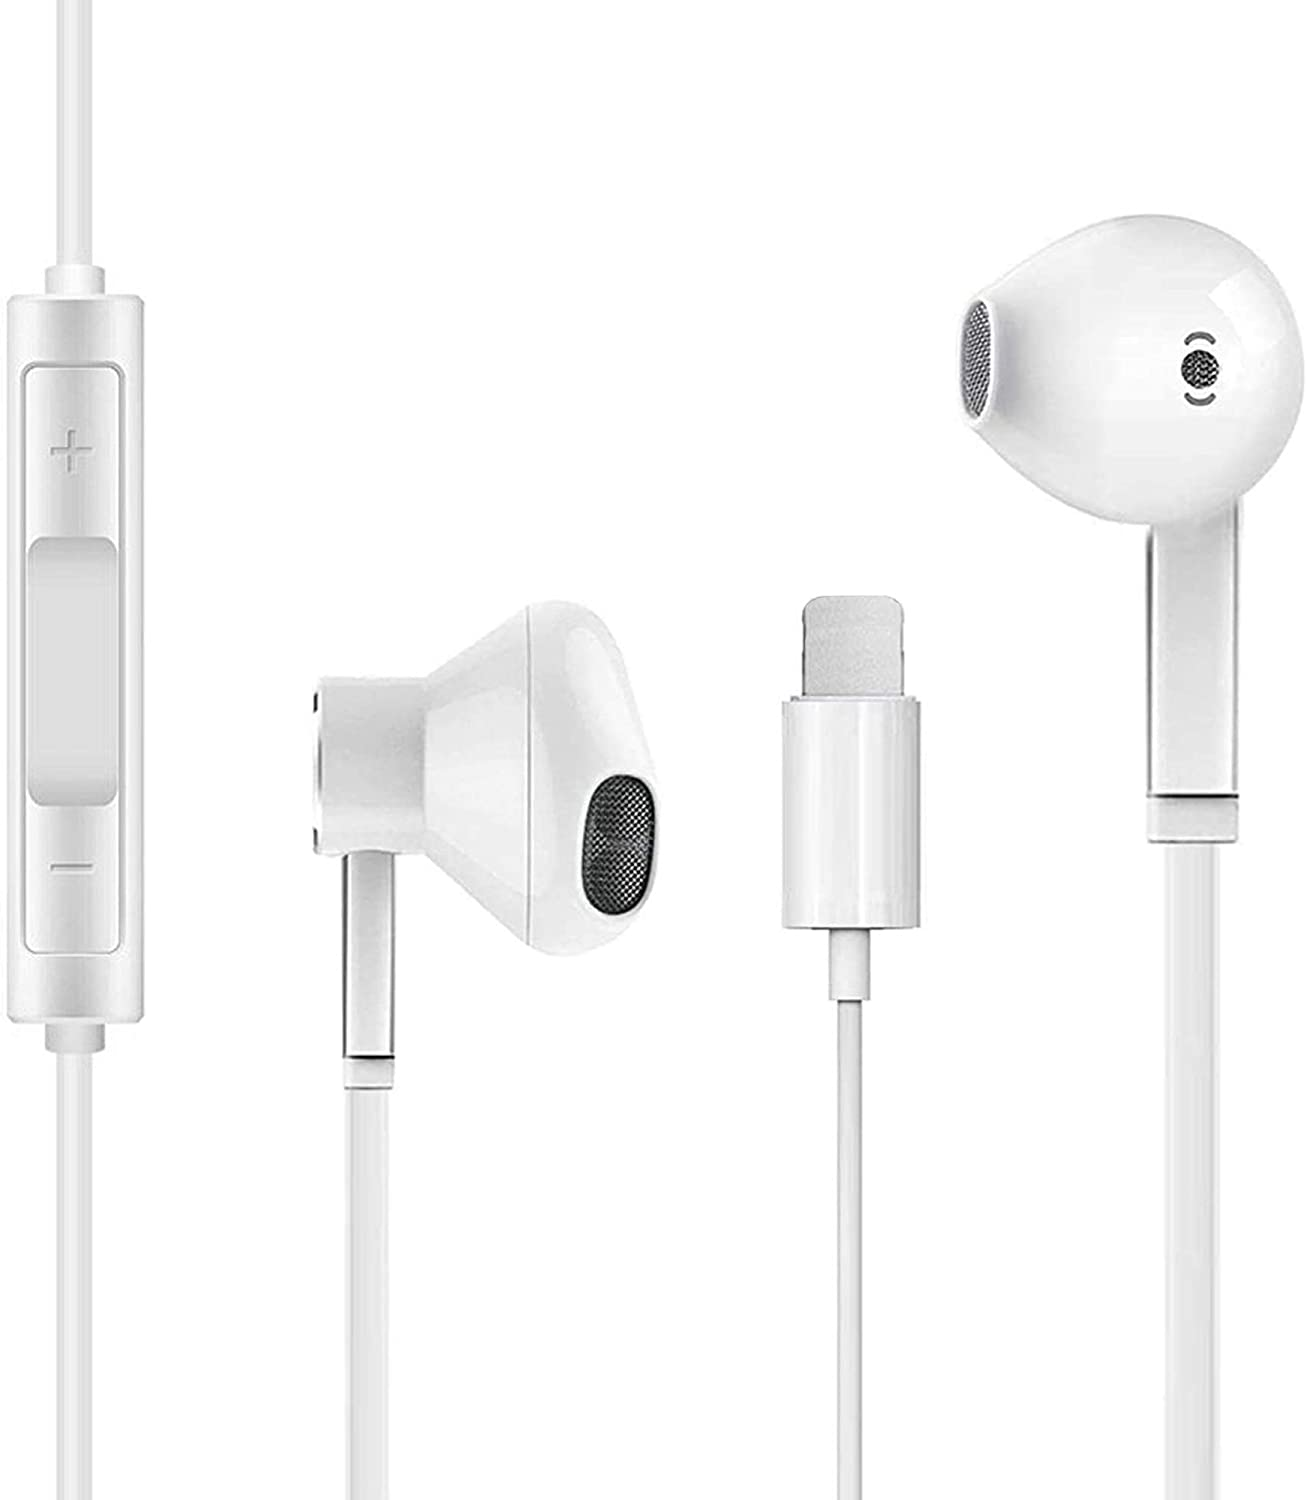 [Apple MFi Certified] iPhone Earphones, Wired Headphones Earbuds, with Built-in Mic & Volume Control, Compatible with iPhone 12/12 Pro/SE/11/11 Pro/XR/XS/8 Plus/7 Plus (White)